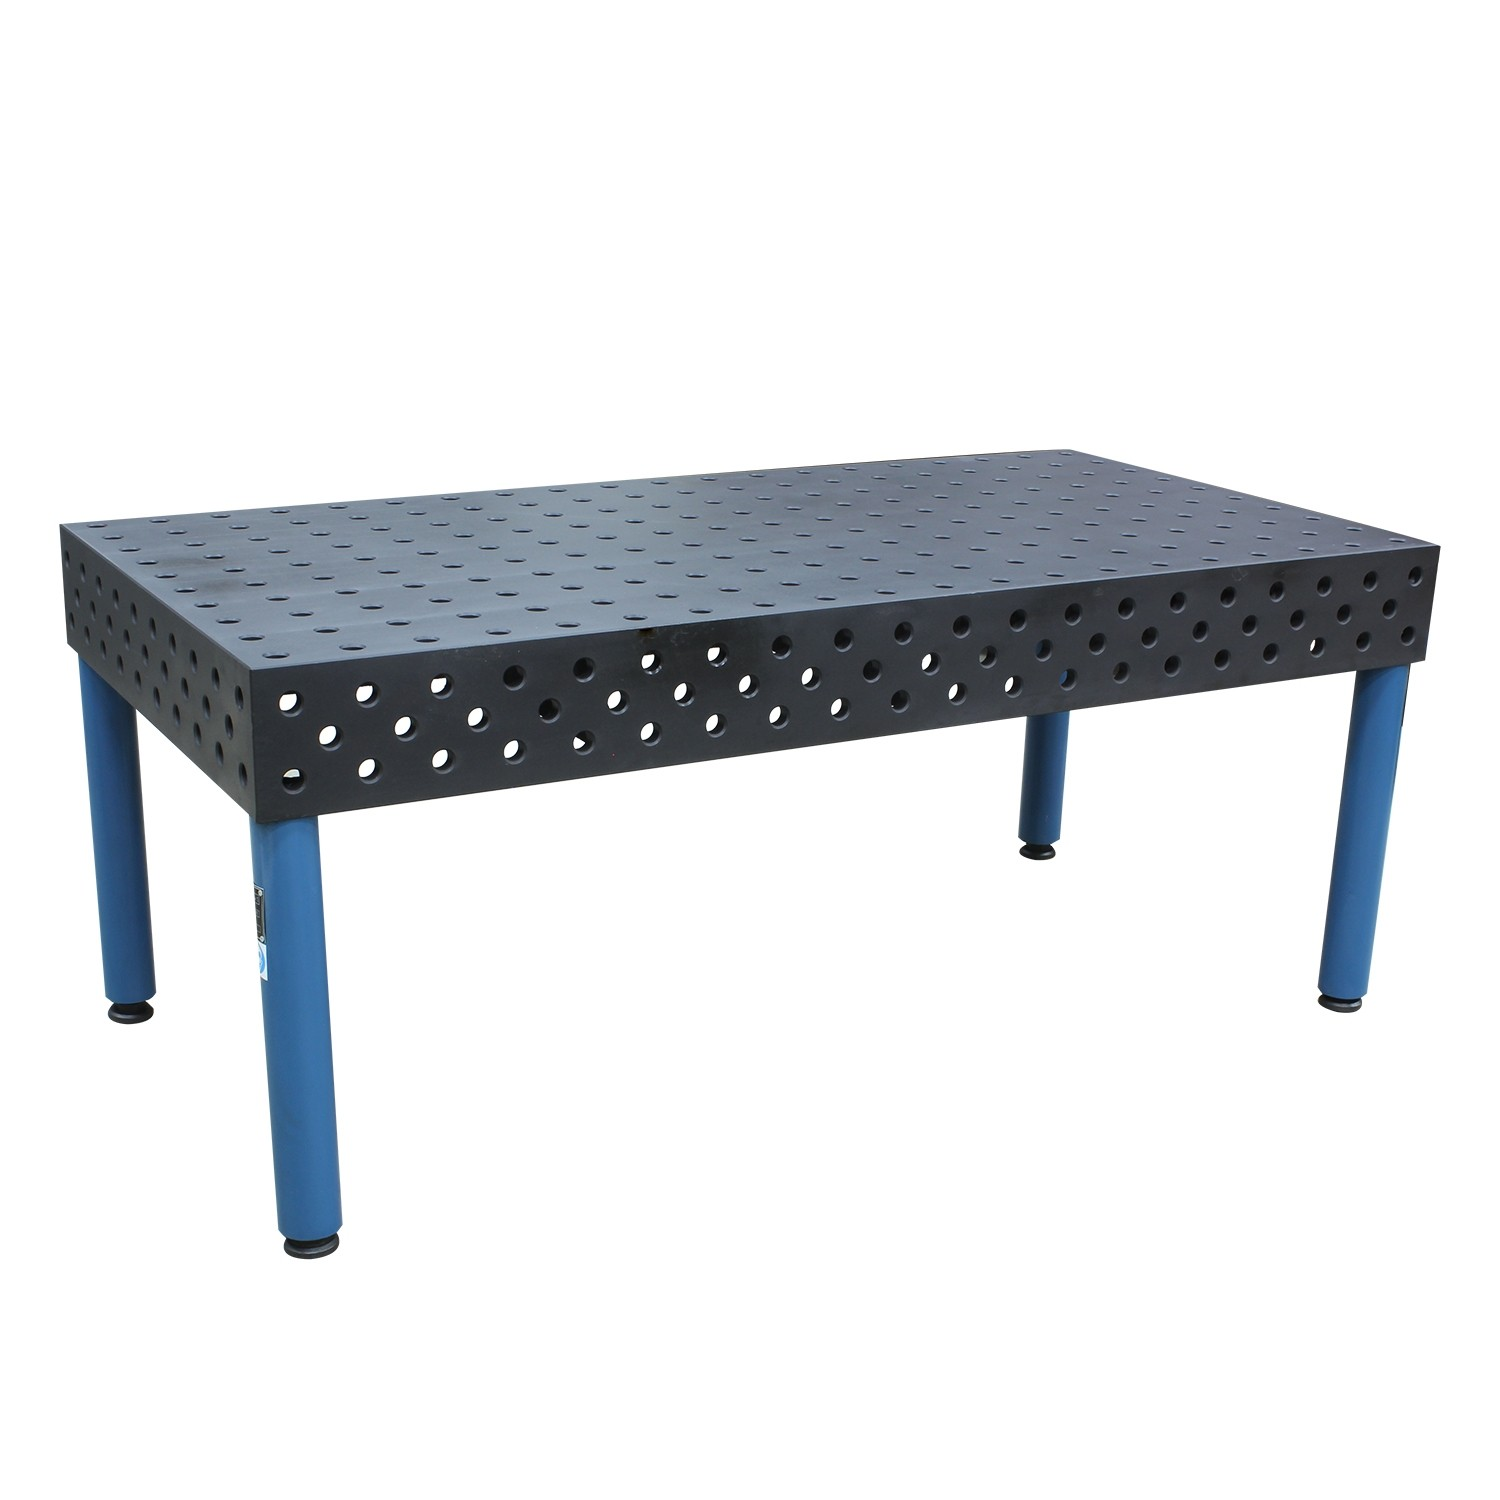 Outstanding Wjt 7839 Hd Welding Table Home Interior And Landscaping Oversignezvosmurscom